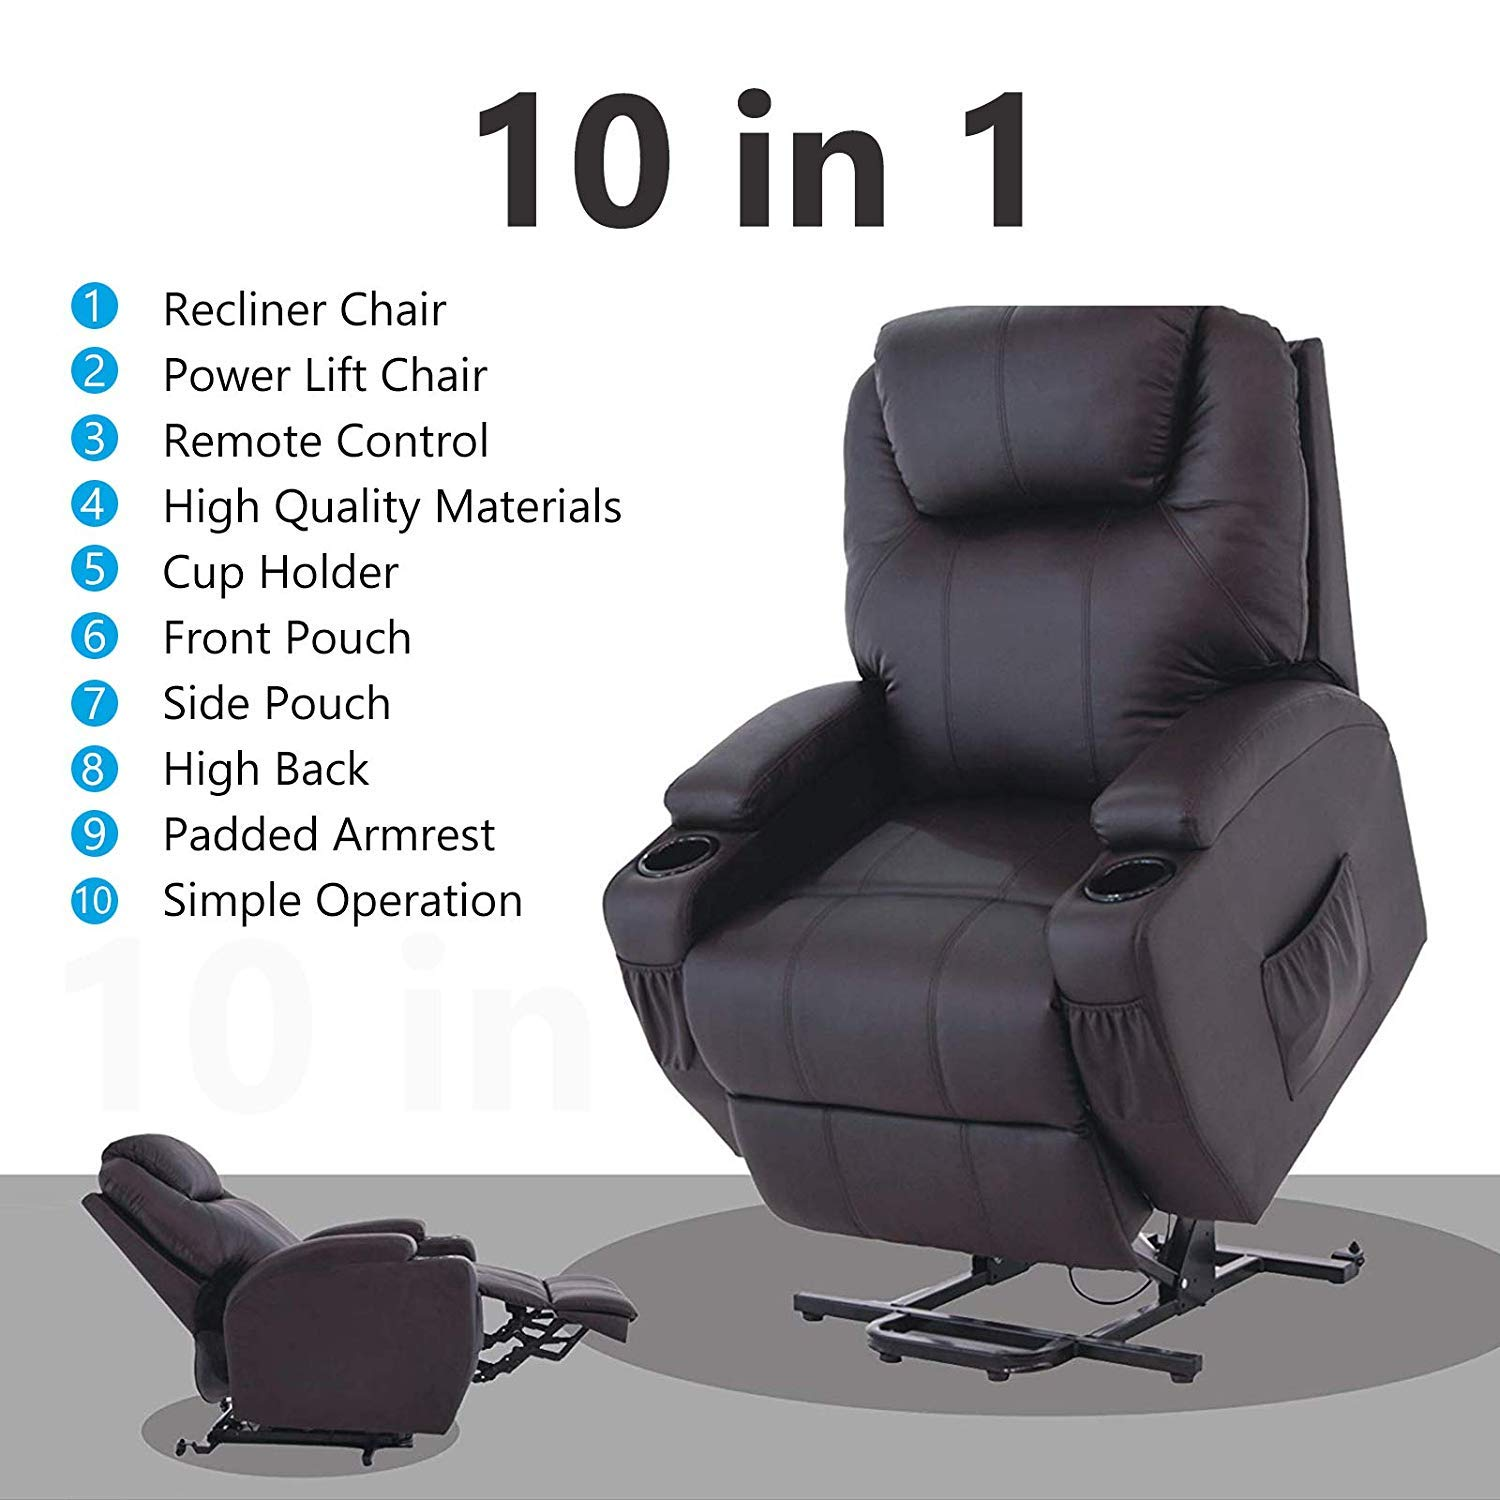 Awe Inspiring Mecor Lift Chairs For Elderly Power Lift Recliner Bonded Leather Lifting Sofa Chair With Remote Control Reinforced Heavy Duty Reclining Mechanism Caraccident5 Cool Chair Designs And Ideas Caraccident5Info